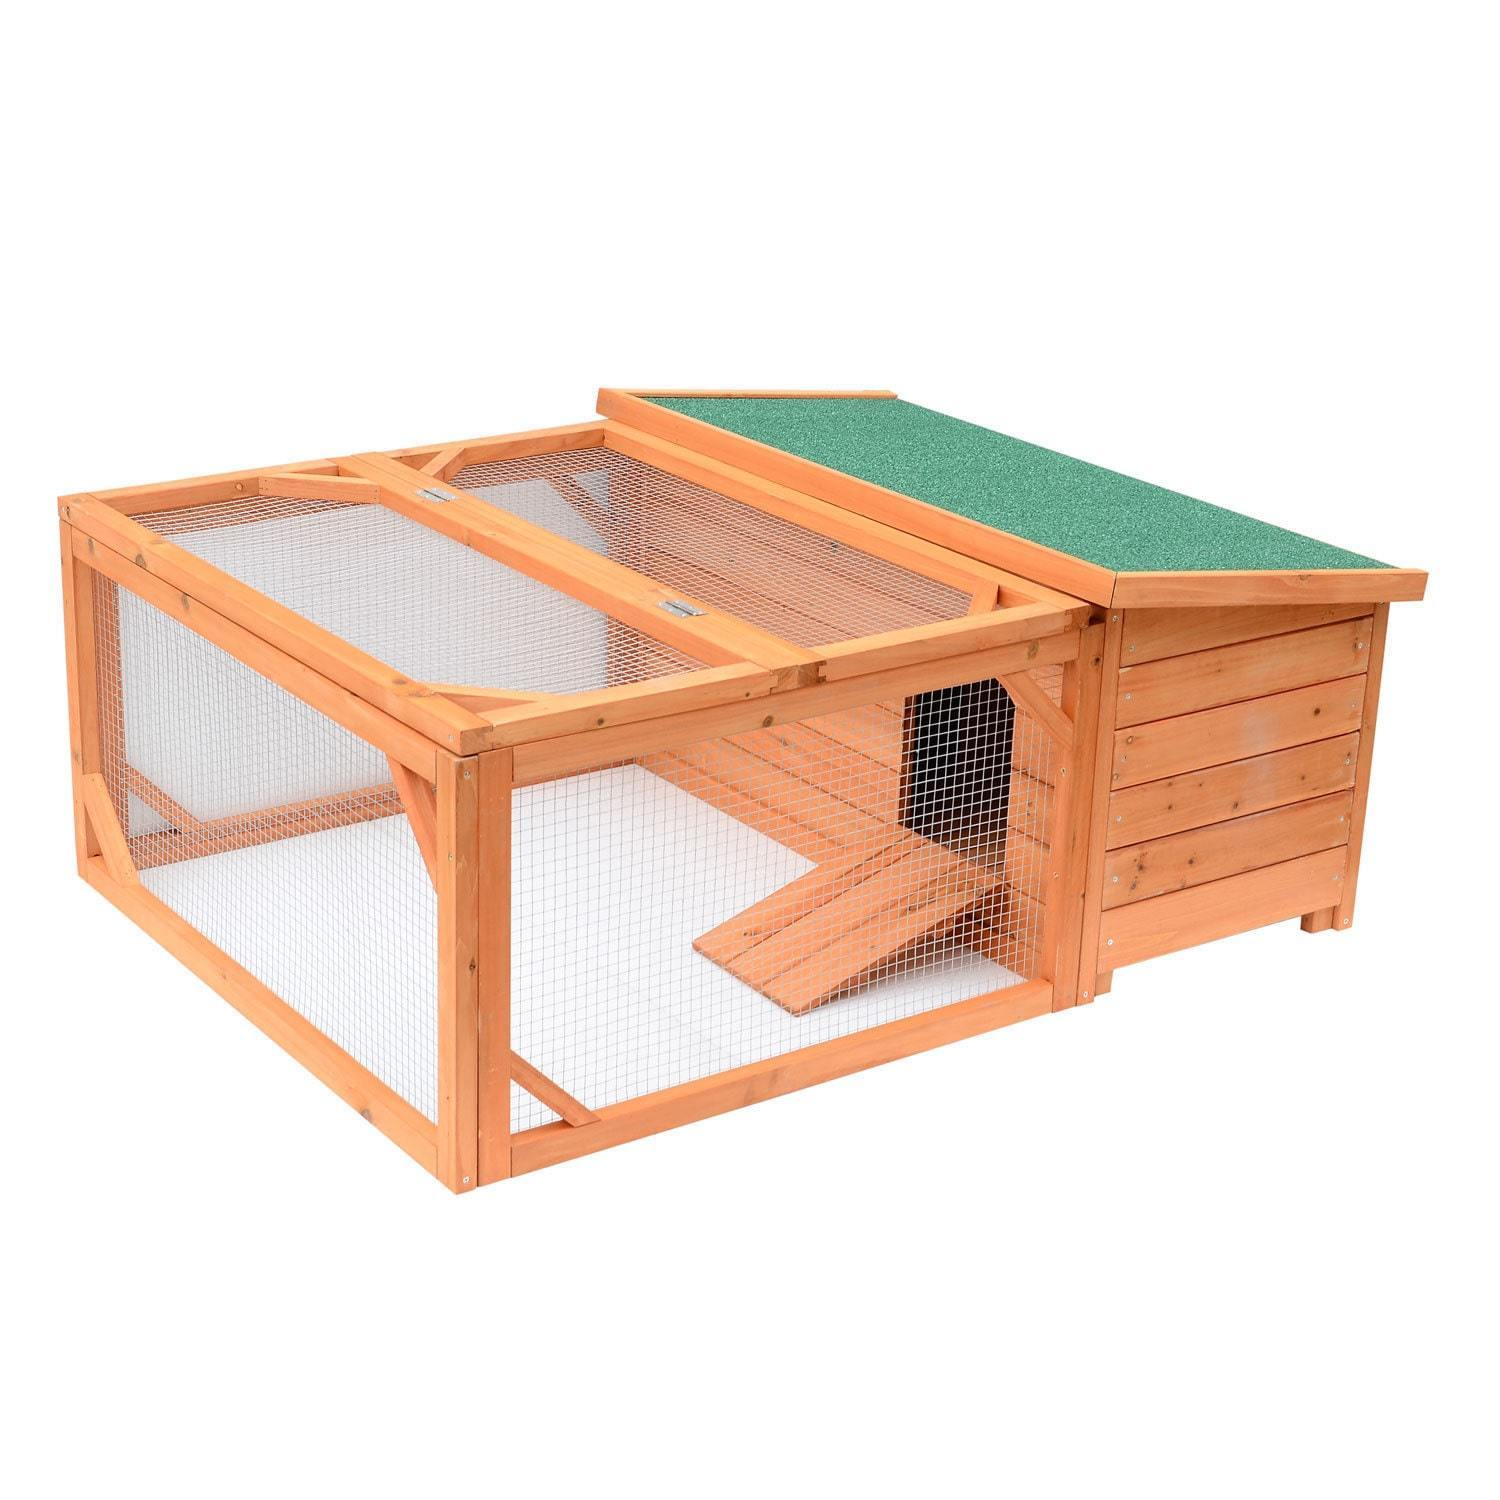 Small Wooden Bunny Rabbit and Guinea Pig/ Chicken Coop with Outdoor Run